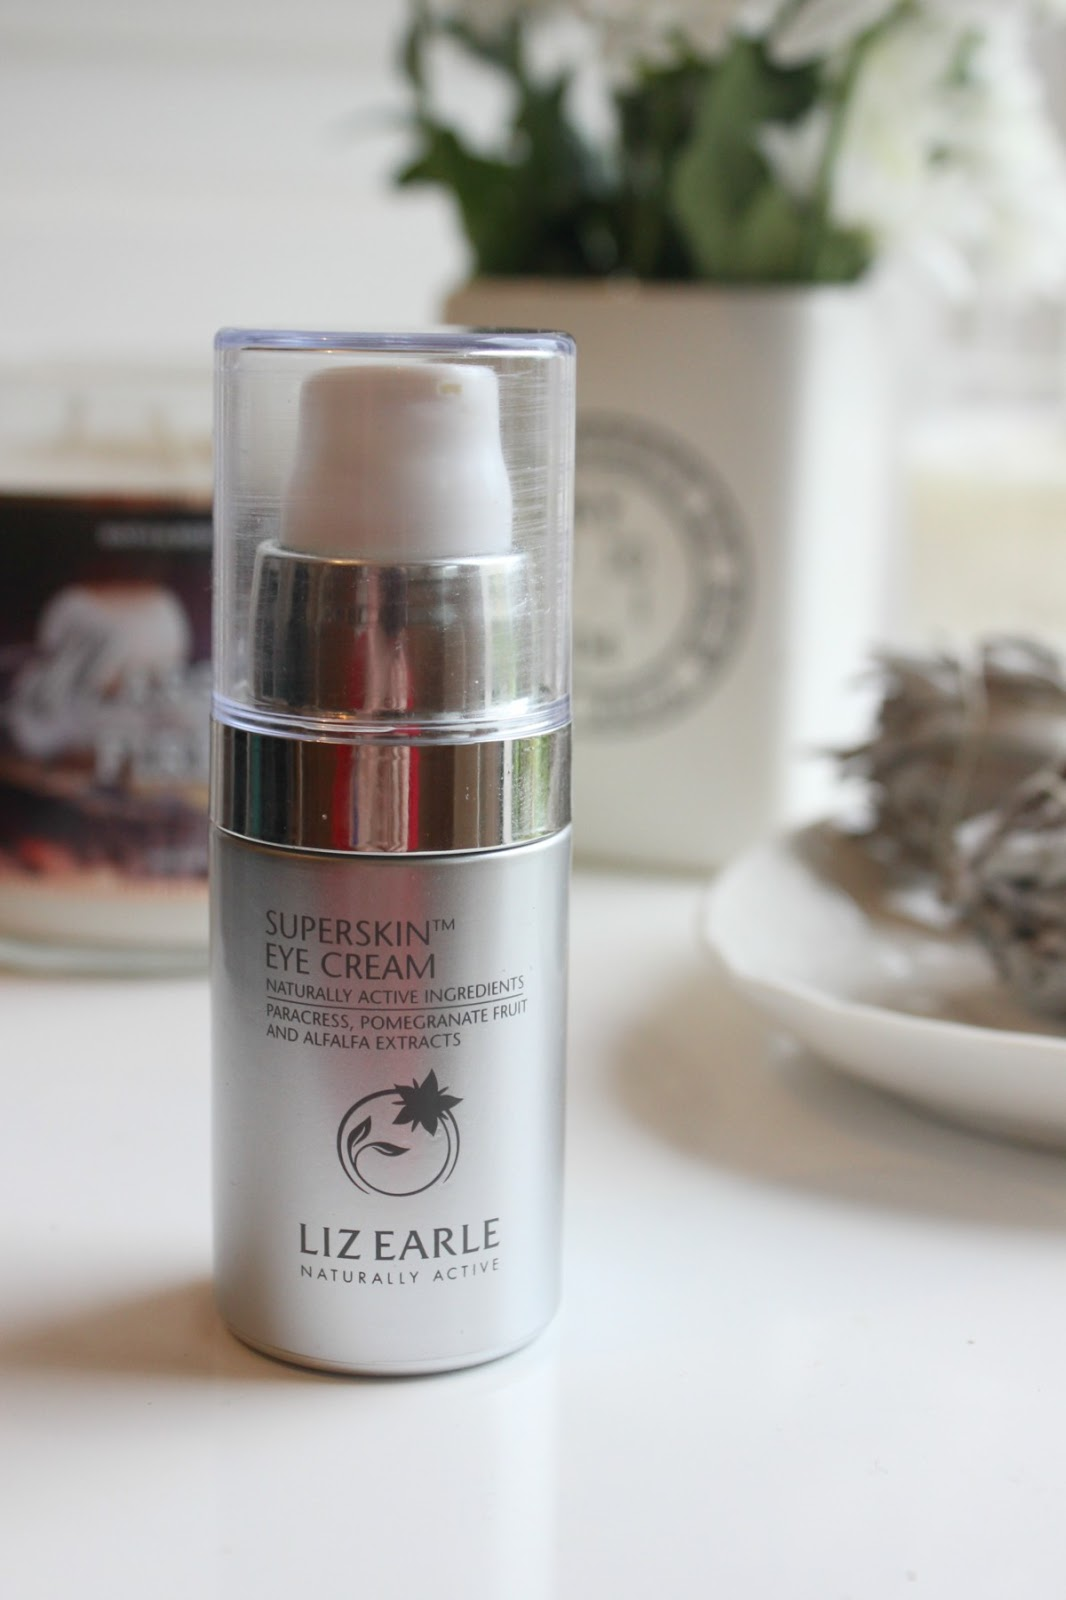 Liz Earle Superskin Eye Cream Review